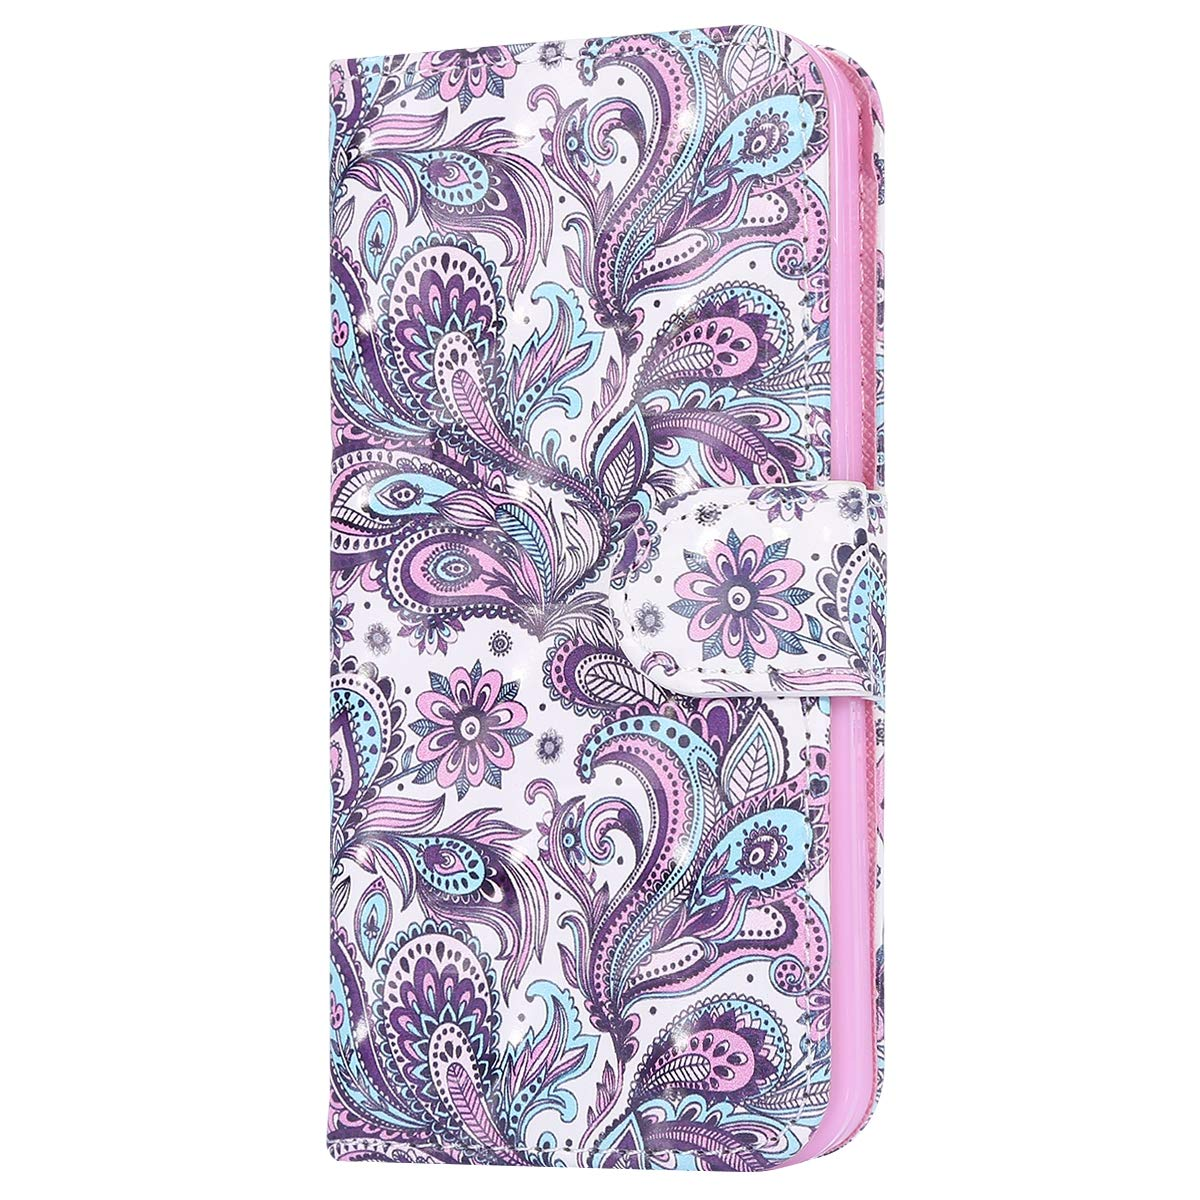 Surakey iPhone SE Case,iPhone 5S Case,iPhone 5 Case, Glitter 3D Flip Leather Phone Case Wallet Case Protective with TPU Case inner Bling Case in Bookstyle Cover Bumper for iPhone SE /5S /5, Silver#7 SUR14617